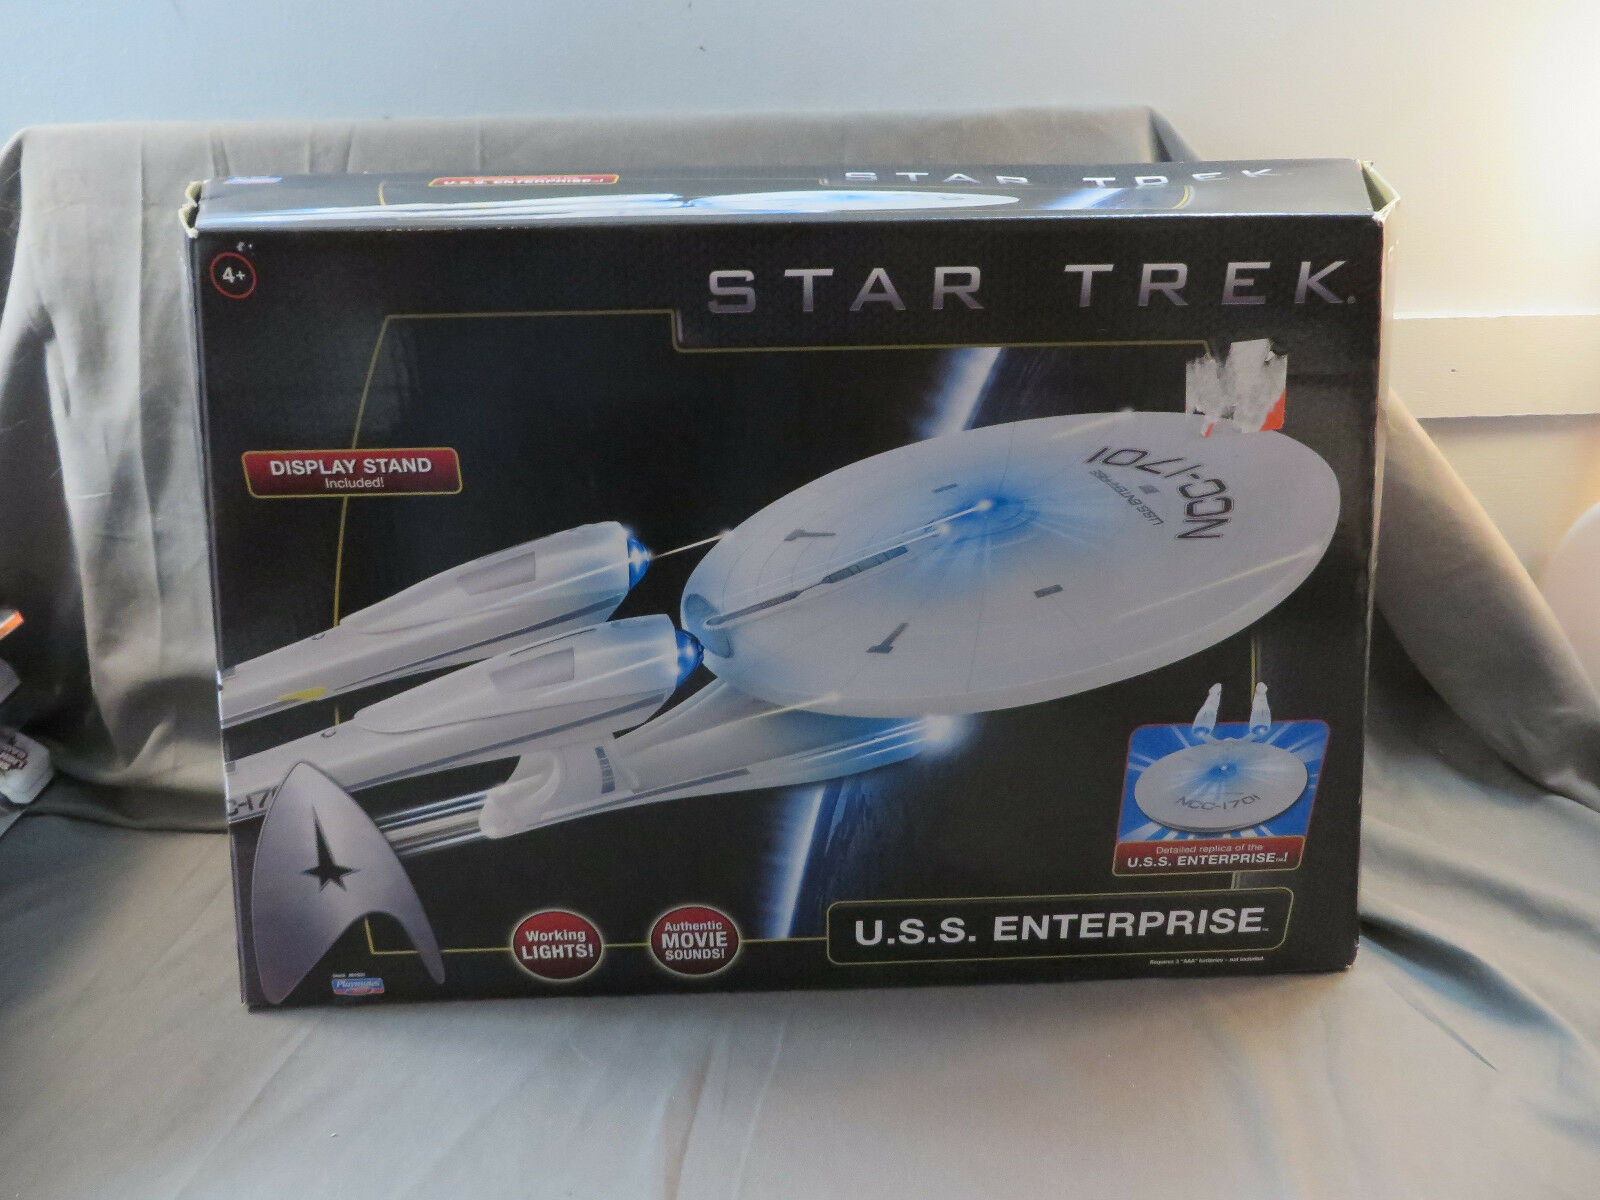 2009 estrella Trek USS Enterprise Light & suono Detailed  Replica by Playmates nuovo  80% di sconto